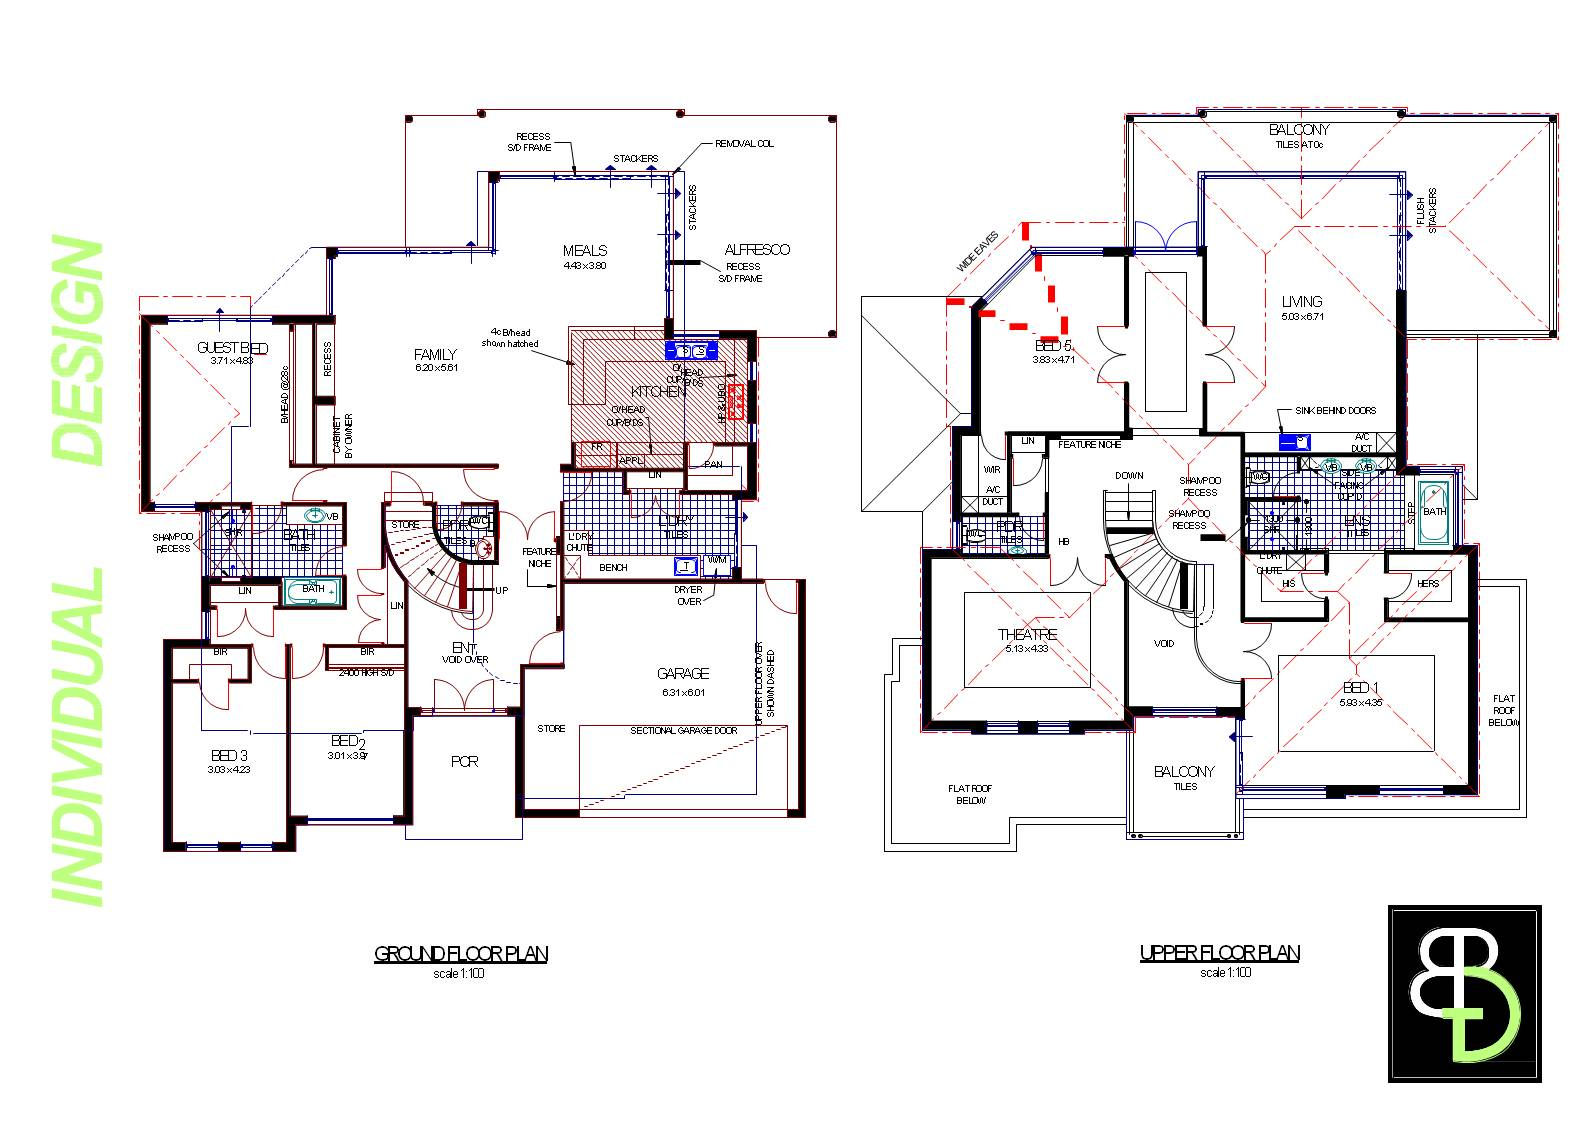 Smart placement simple double story house plans ideas for 2 story house blueprints